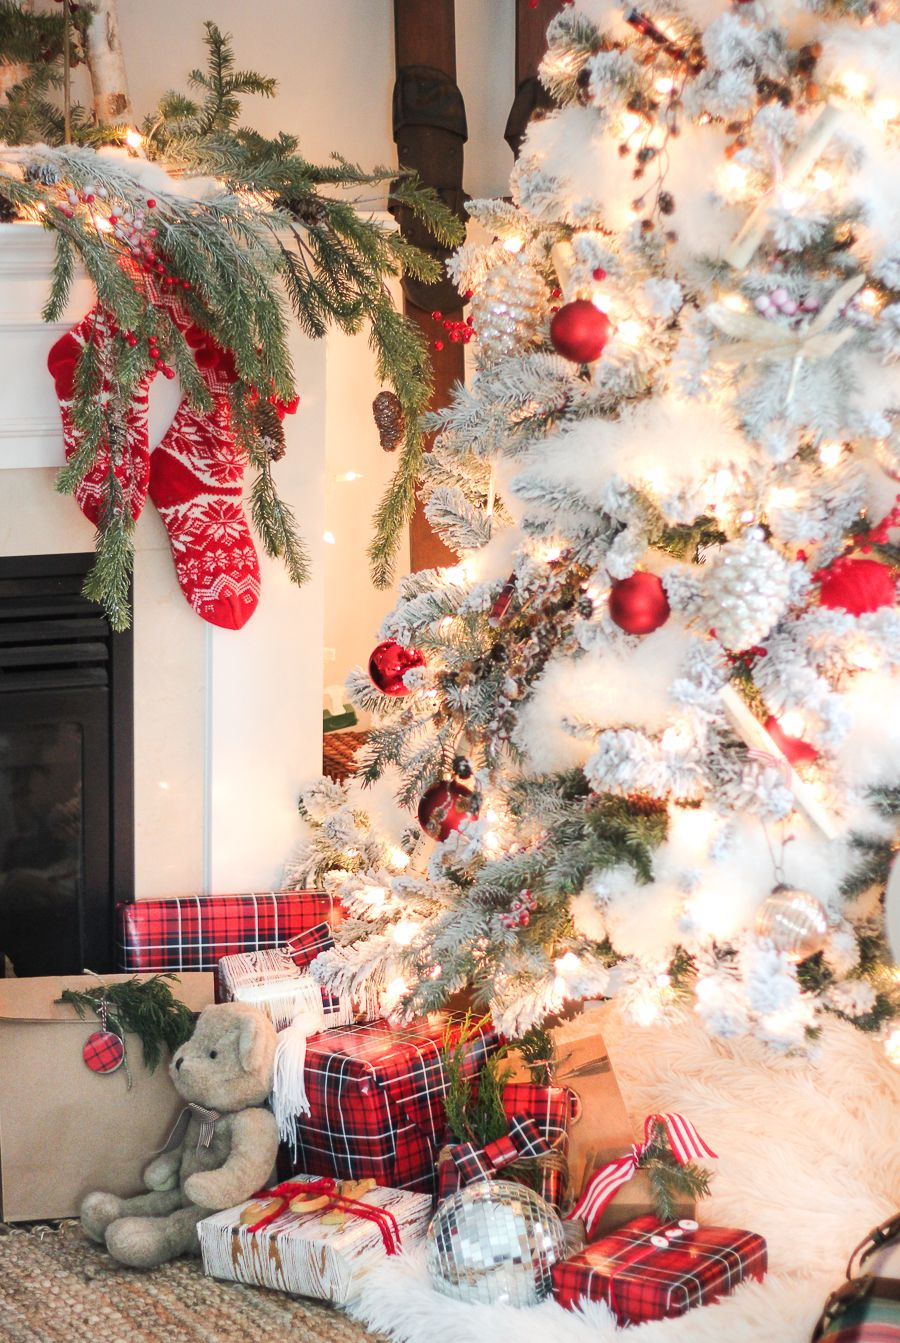 Best Place For Christmas Decorations 25 Christmas Decorating Ideas For An Ultra Stylish Holiday